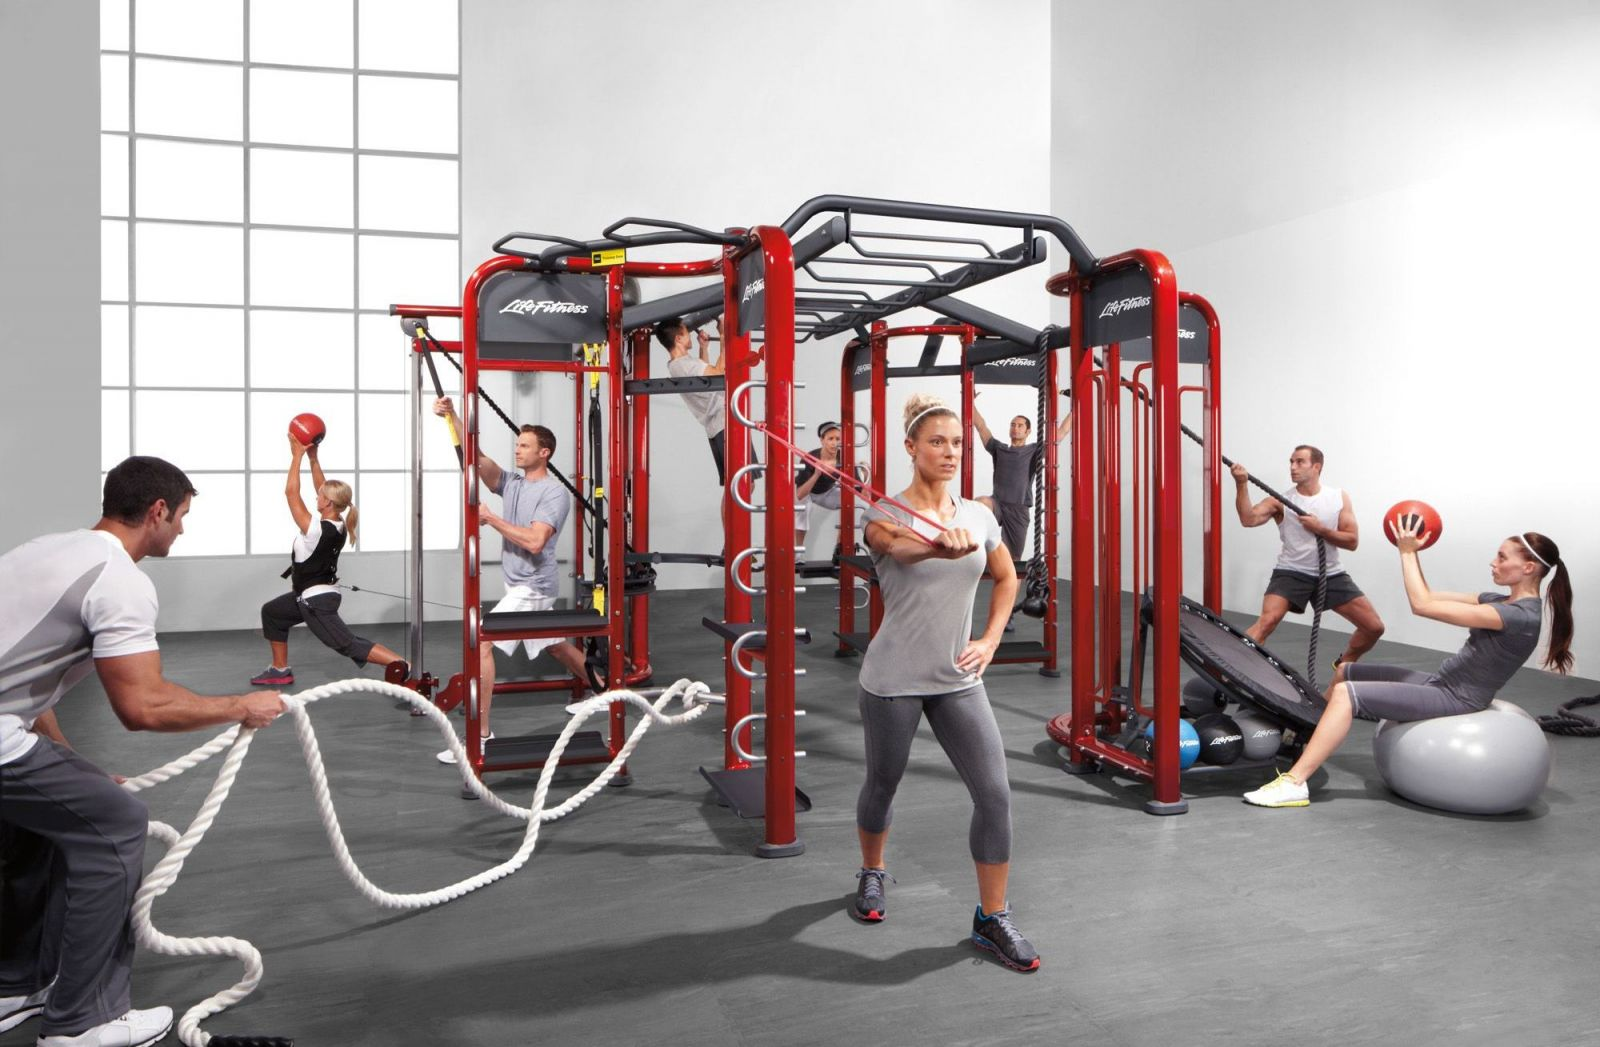 http://way4you.com.ua/images/upload/way4you_functional_gym.jpg